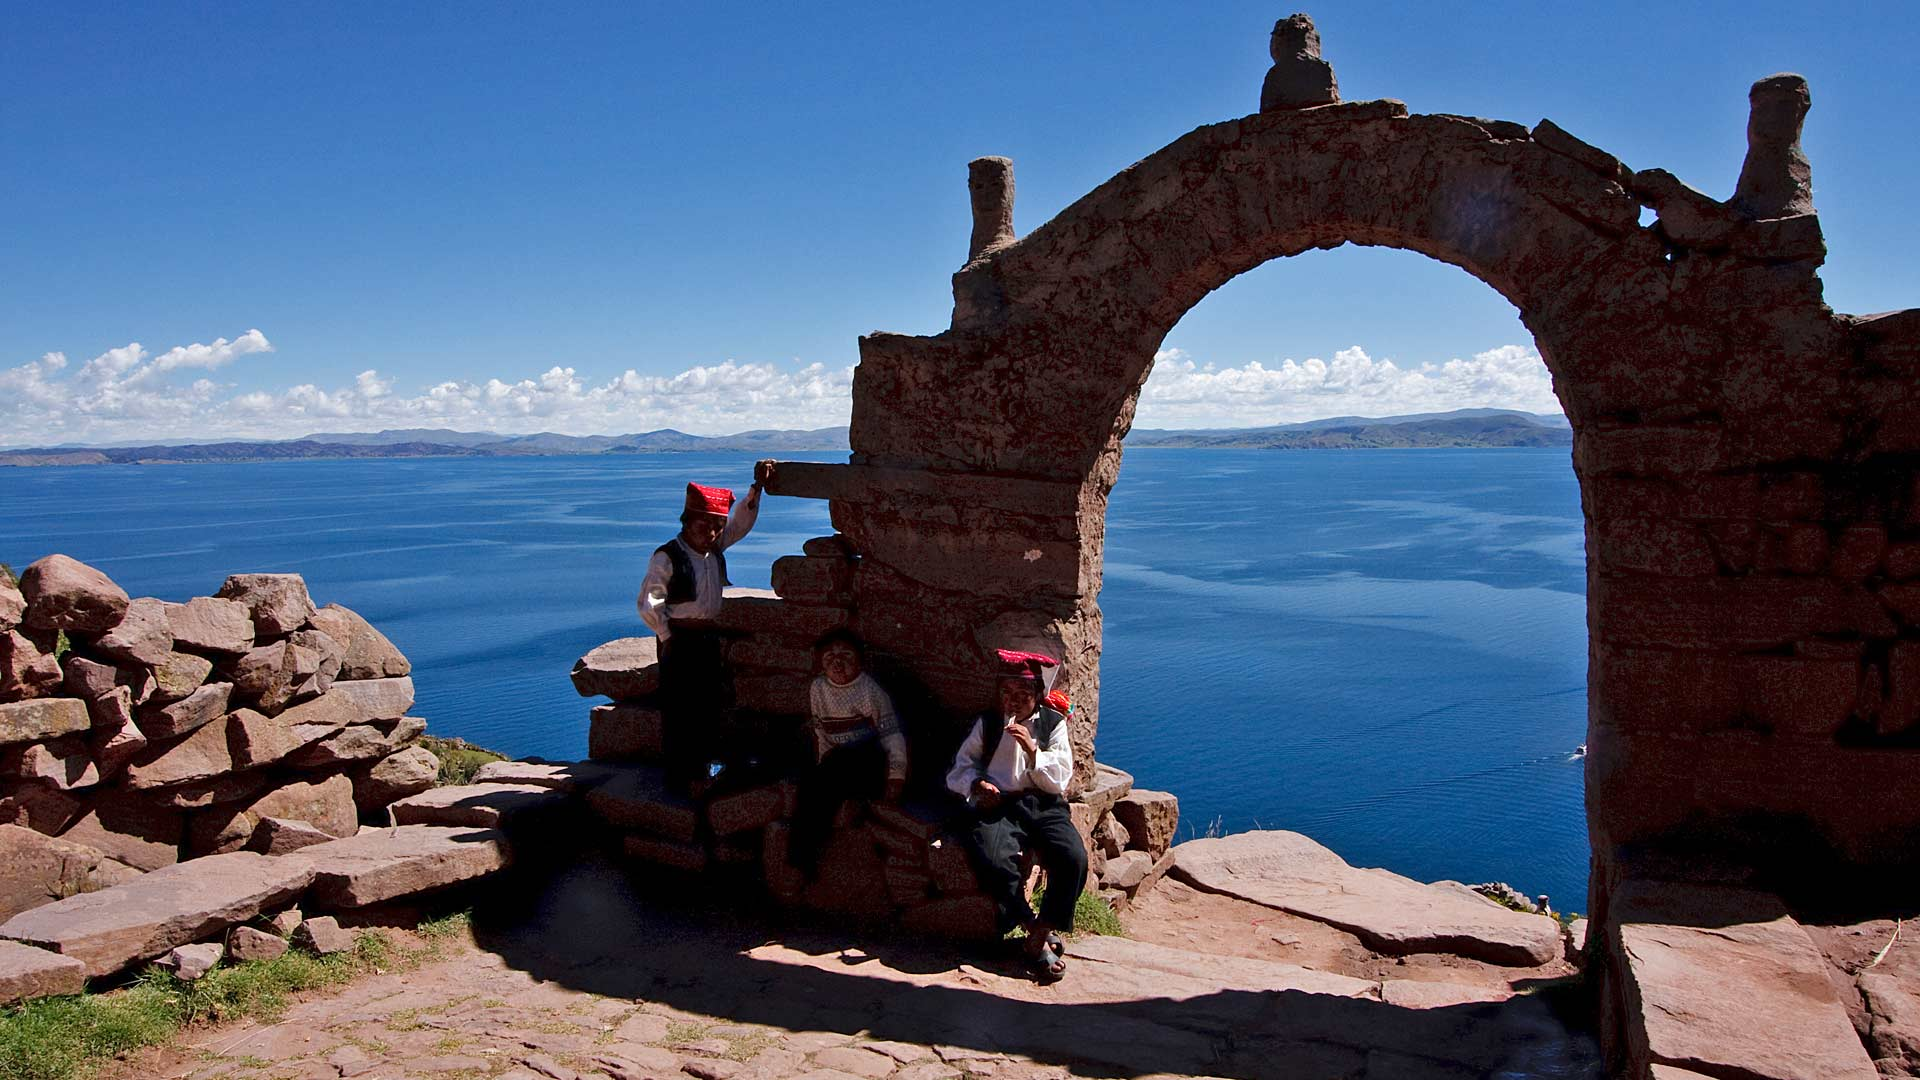 Taquile boys by an arch on Taquila Island overlooking Titicaca Lake